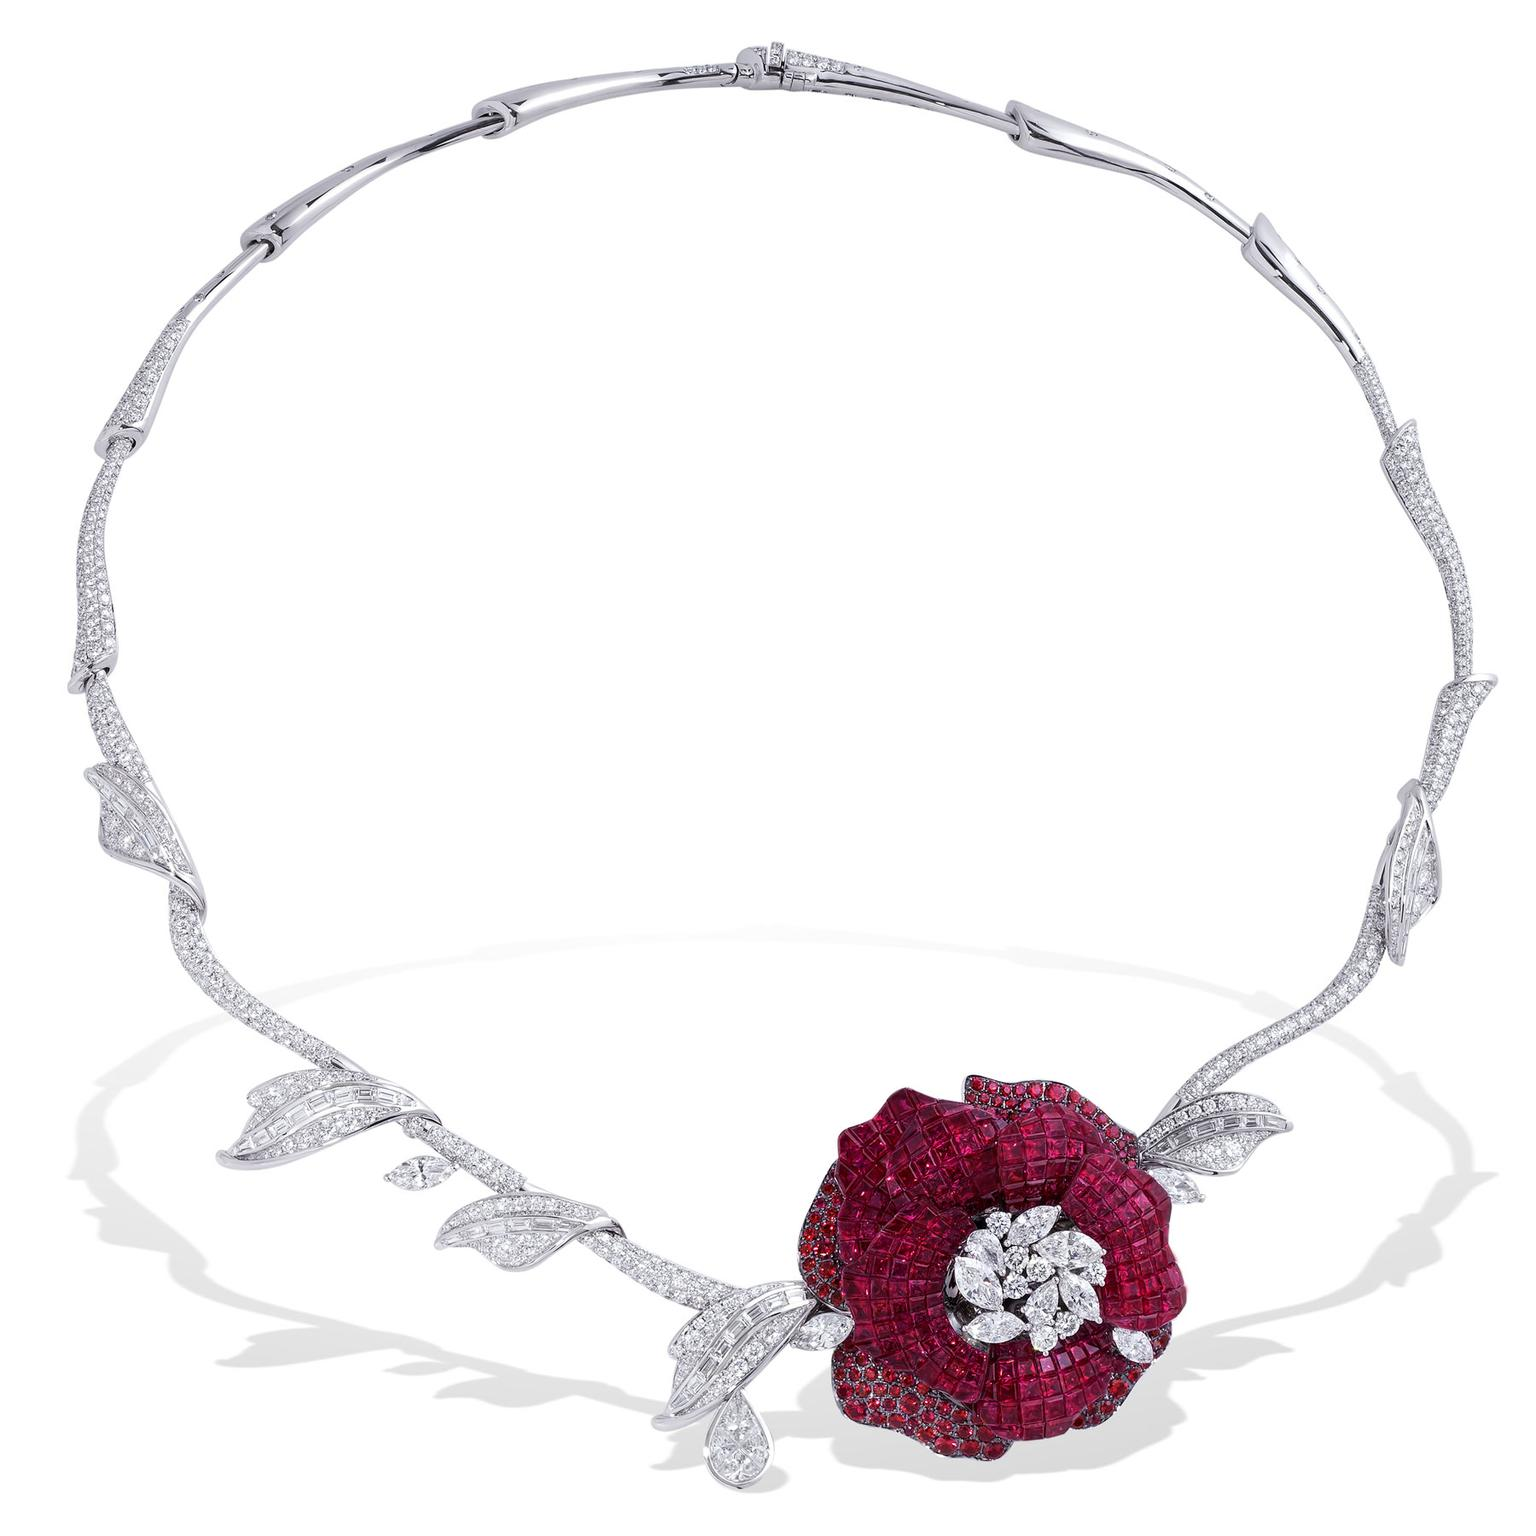 Stenzhorn Rose Red ruby high jewellery necklace